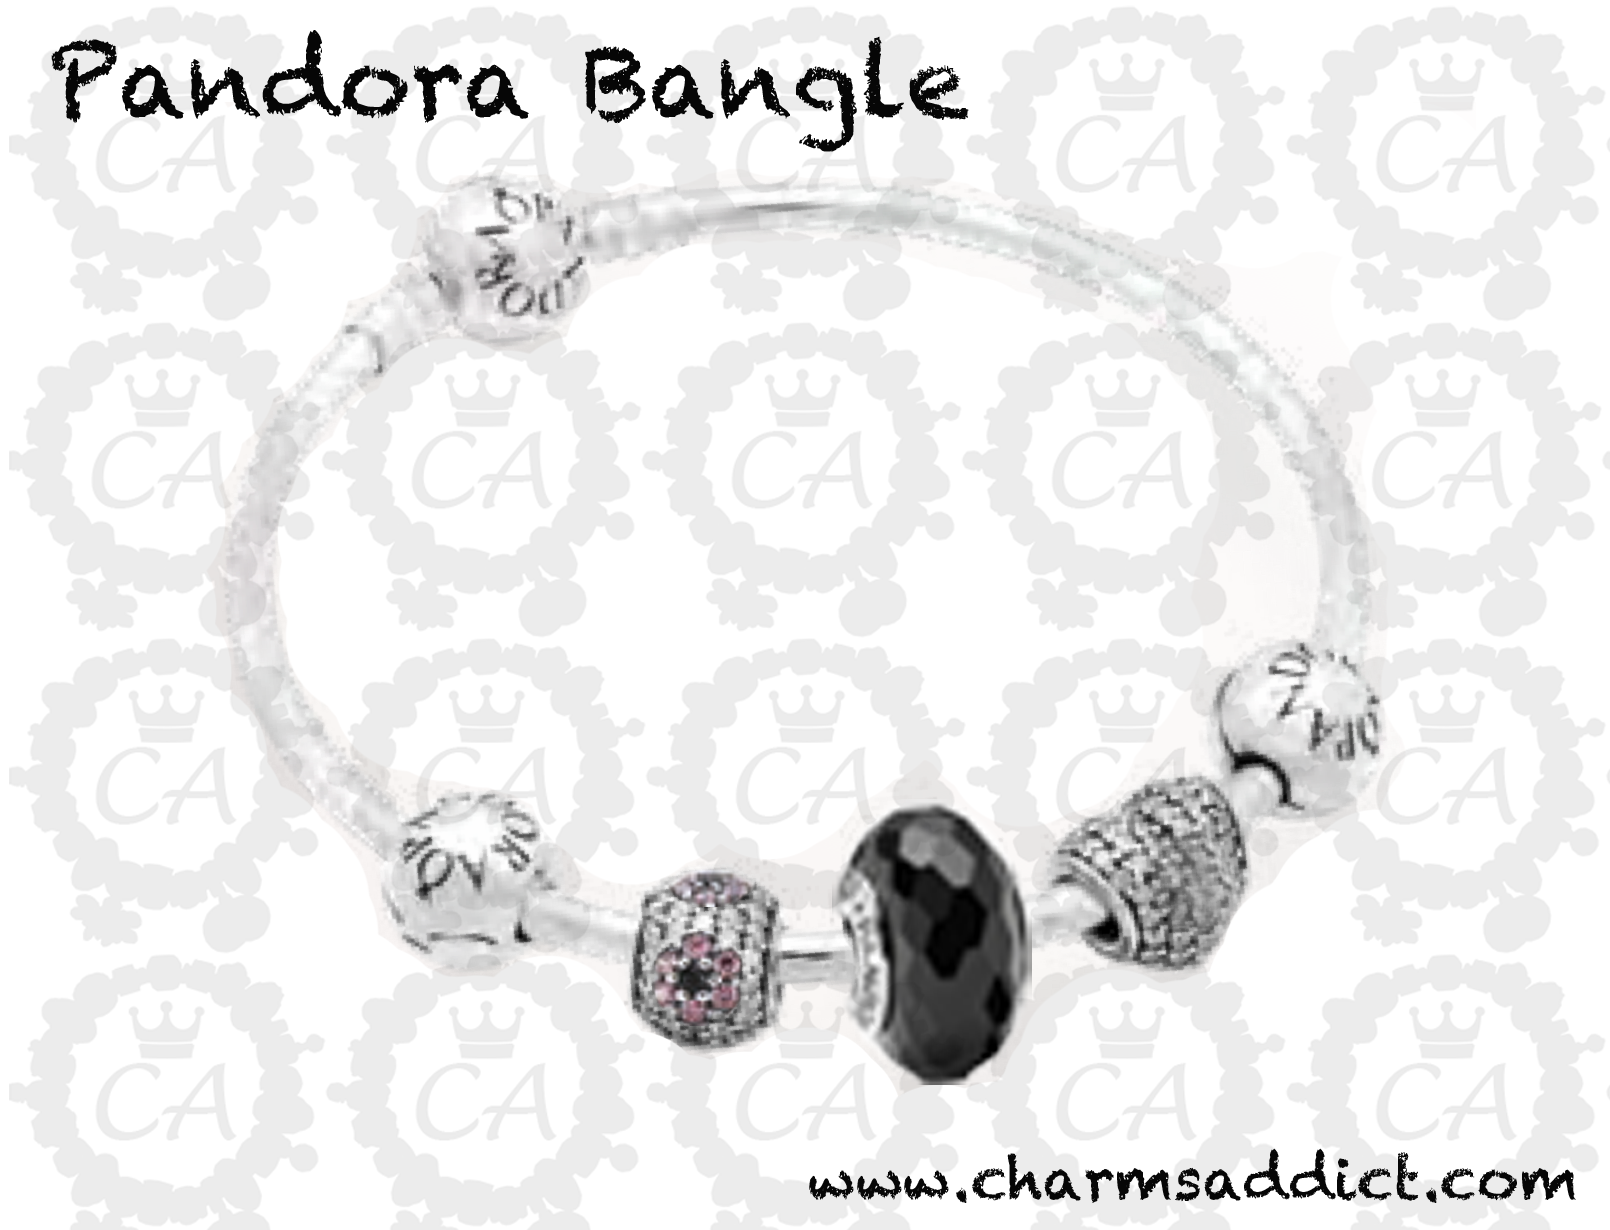 bangle pandora dream travel bangles pin catch my charms themed haul bracelet pinterest